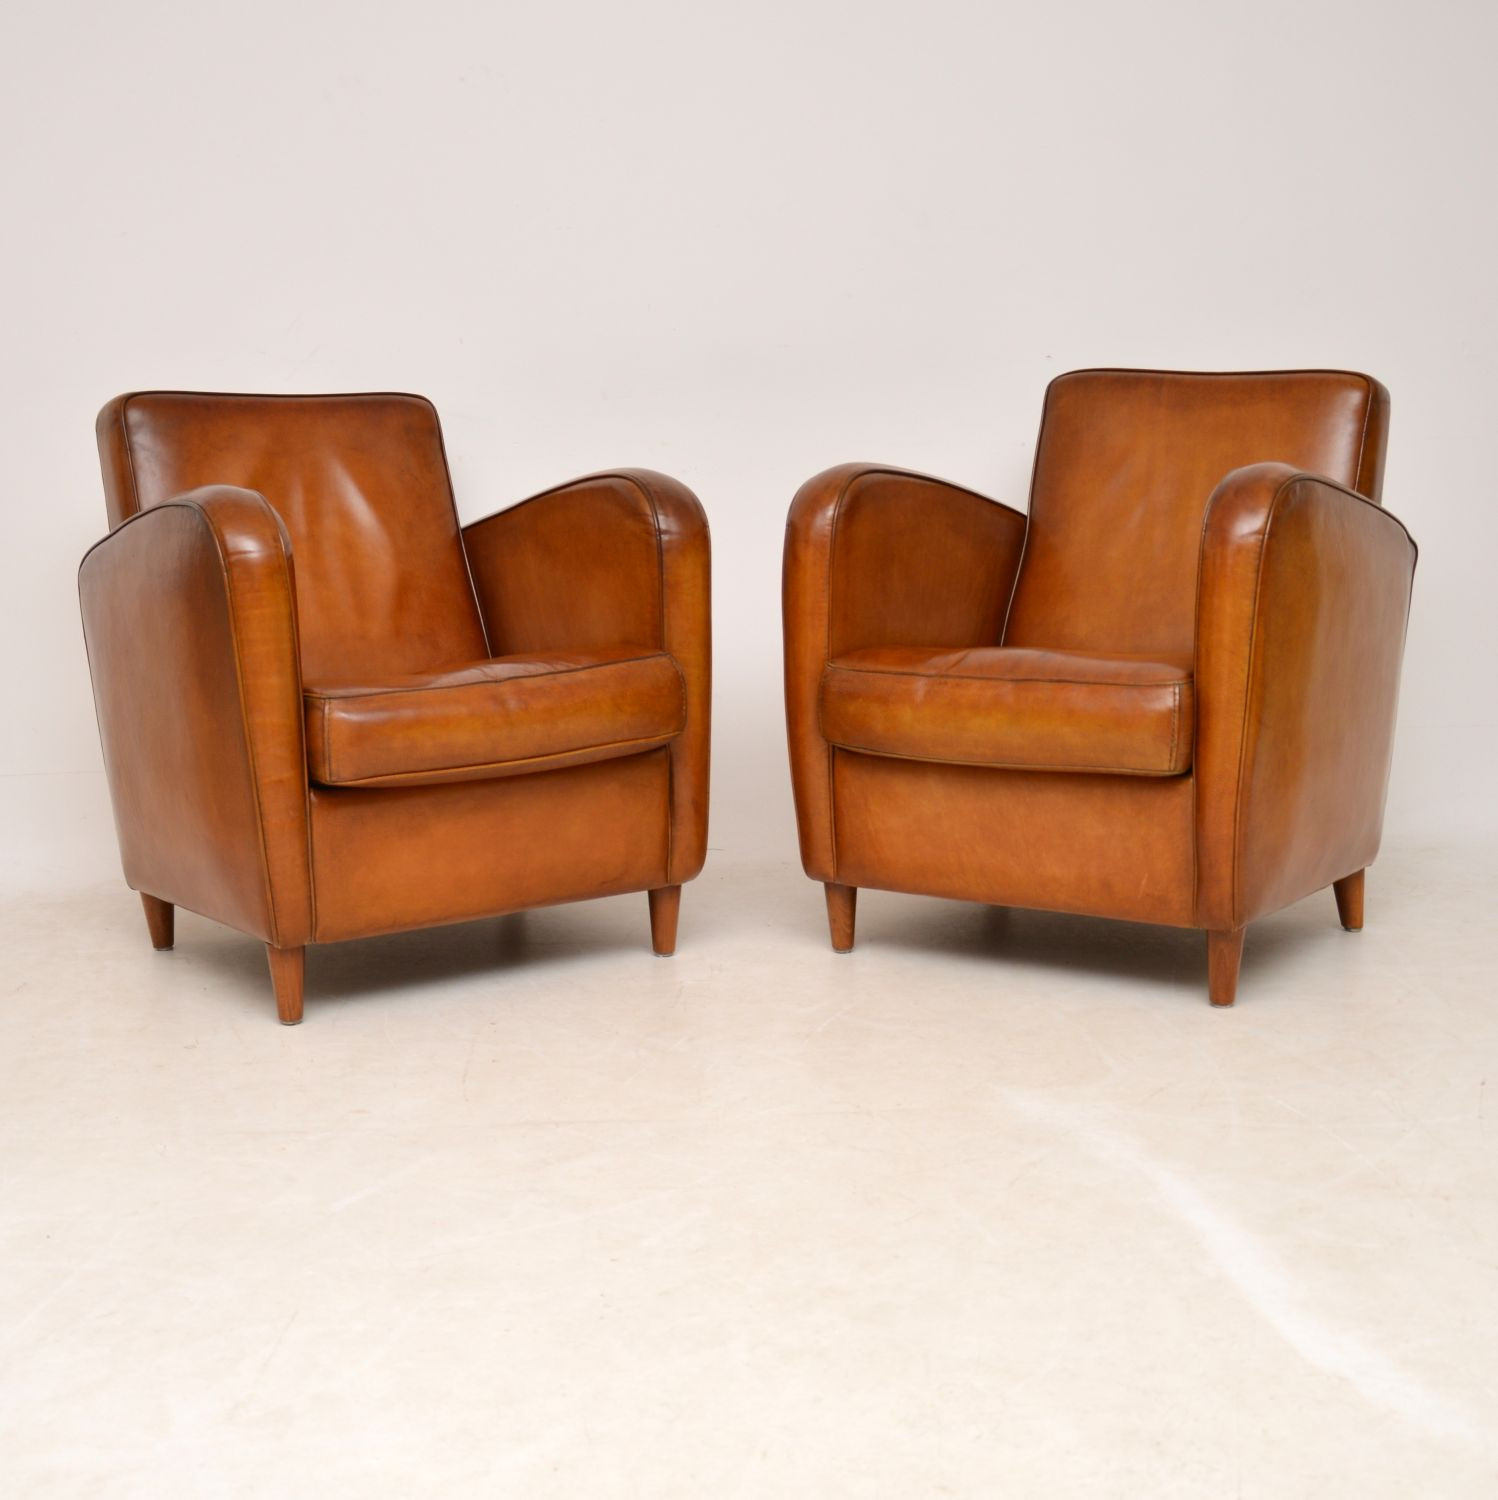 Pair of Vintage Swedish Leather Club Armchairs | Interior ...